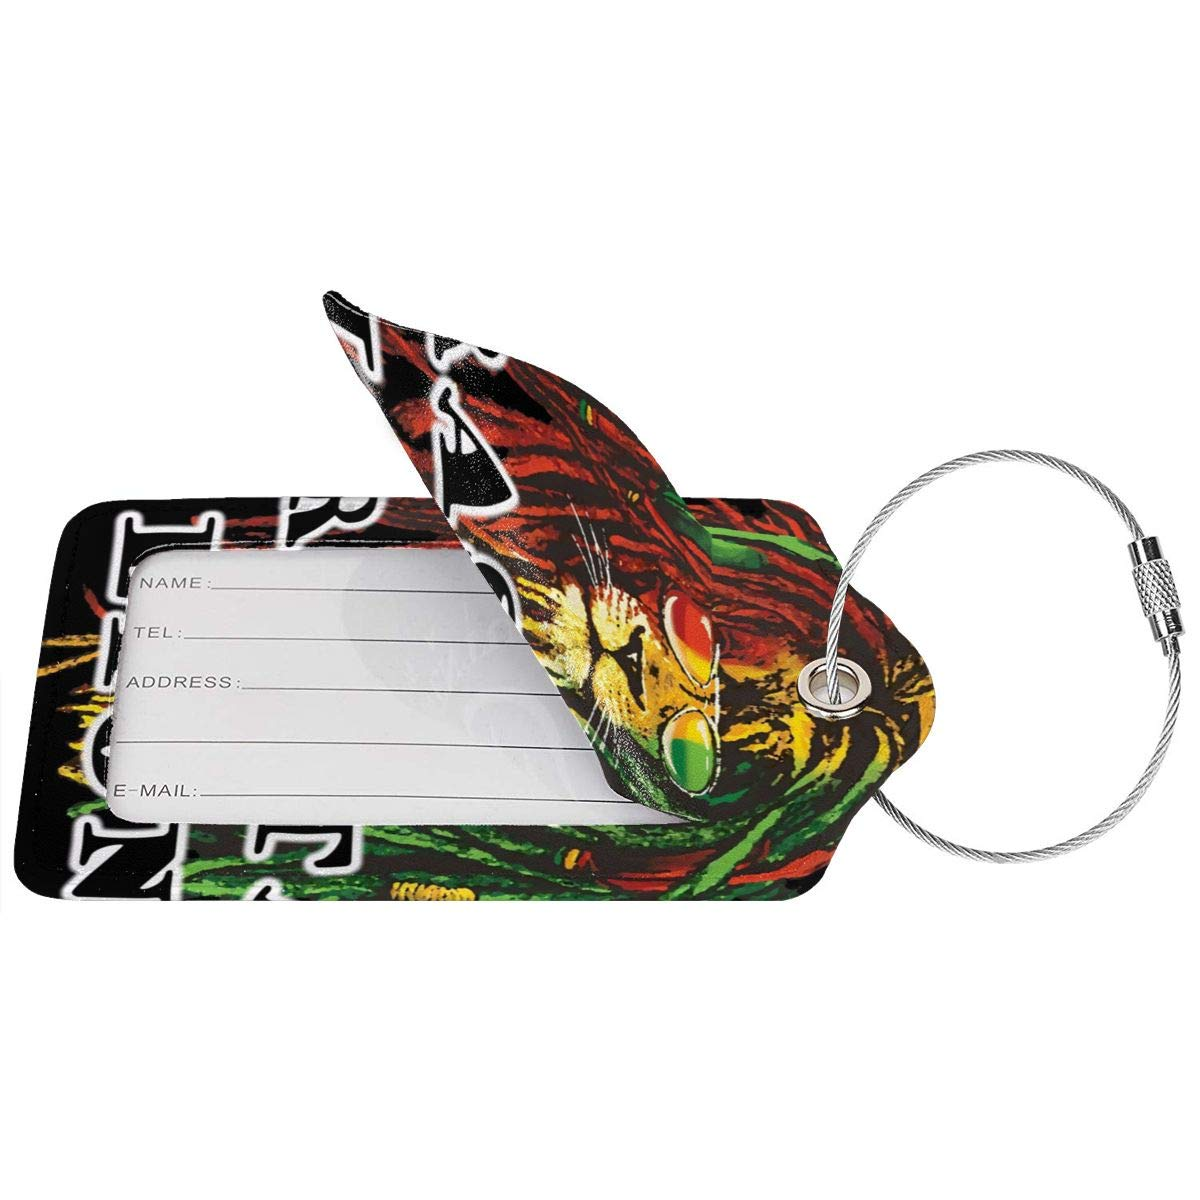 GoldK Rasta Lion Leather Luggage Tags Baggage Bag Instrument Tag Travel Labels Accessories with Privacy Cover